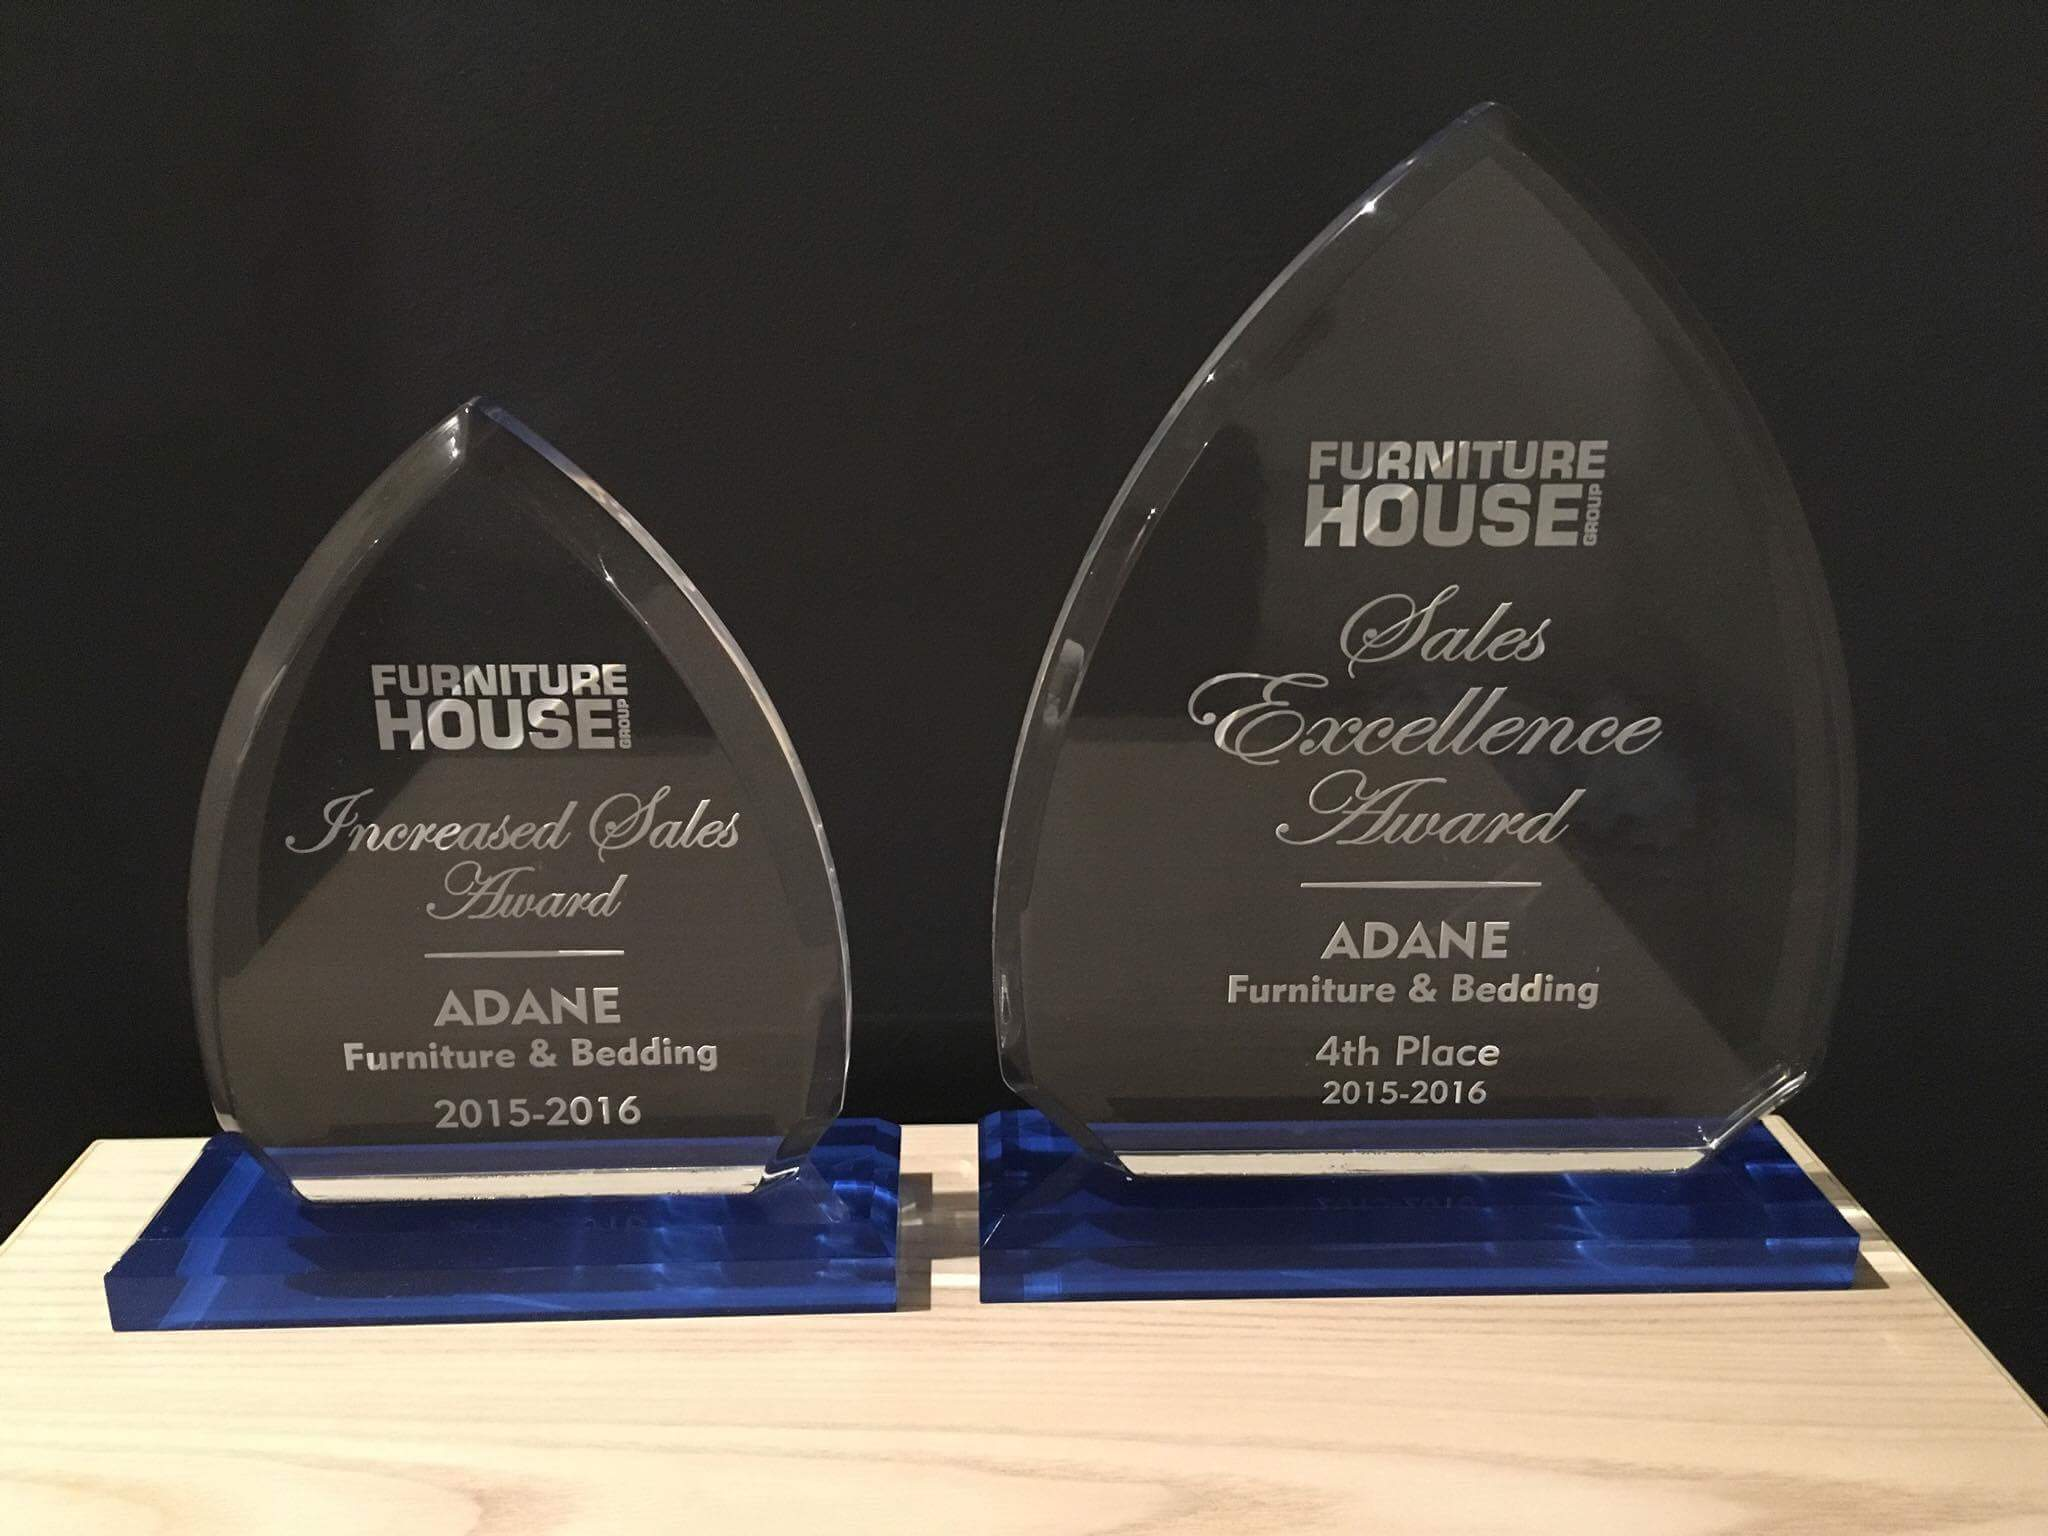 Furniture house sales excellence award